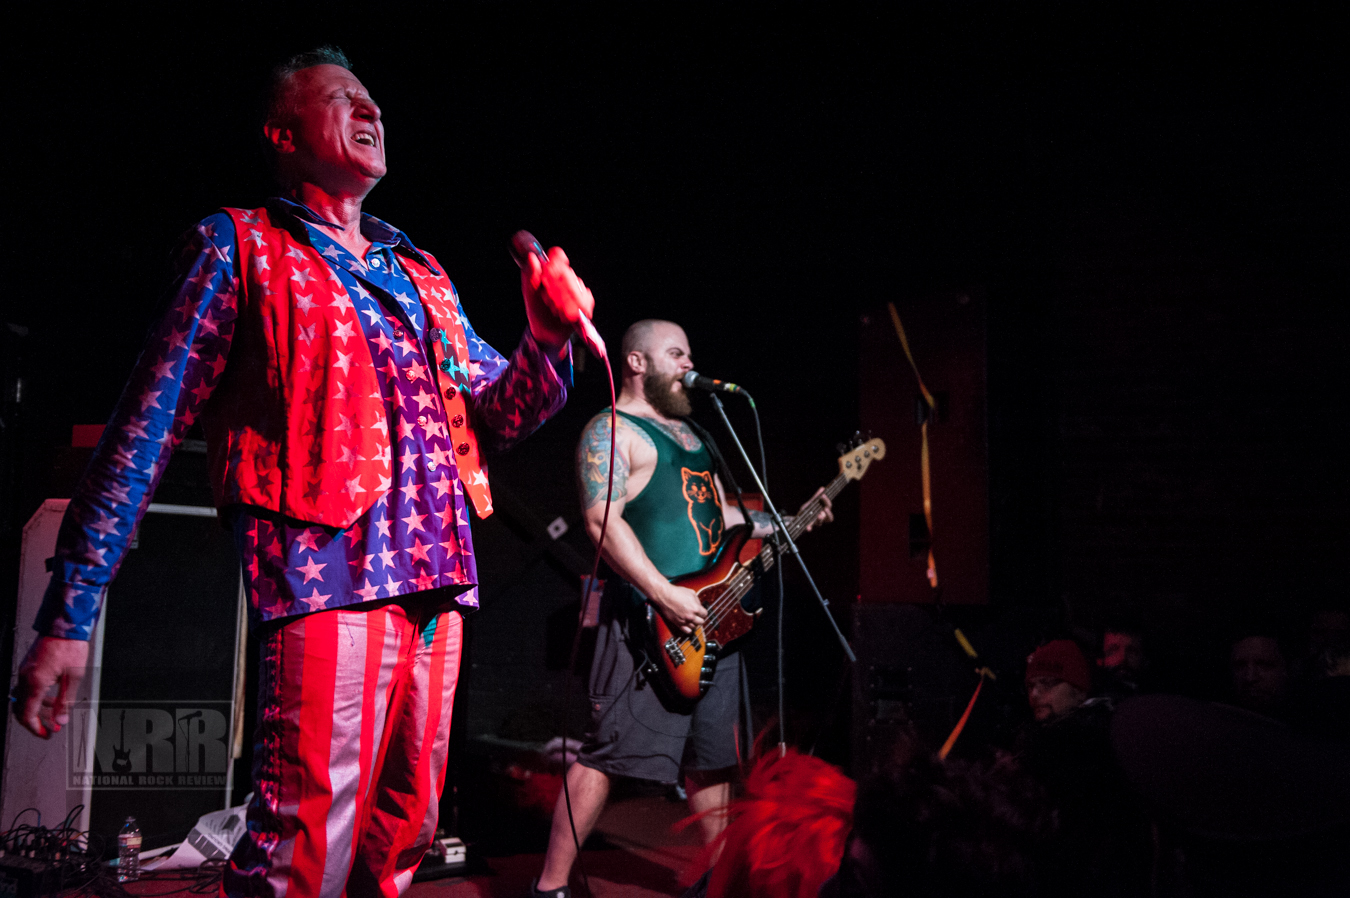 MeatMen-Branx-Portland_OR-20140605-WmRiddle-012.jpg